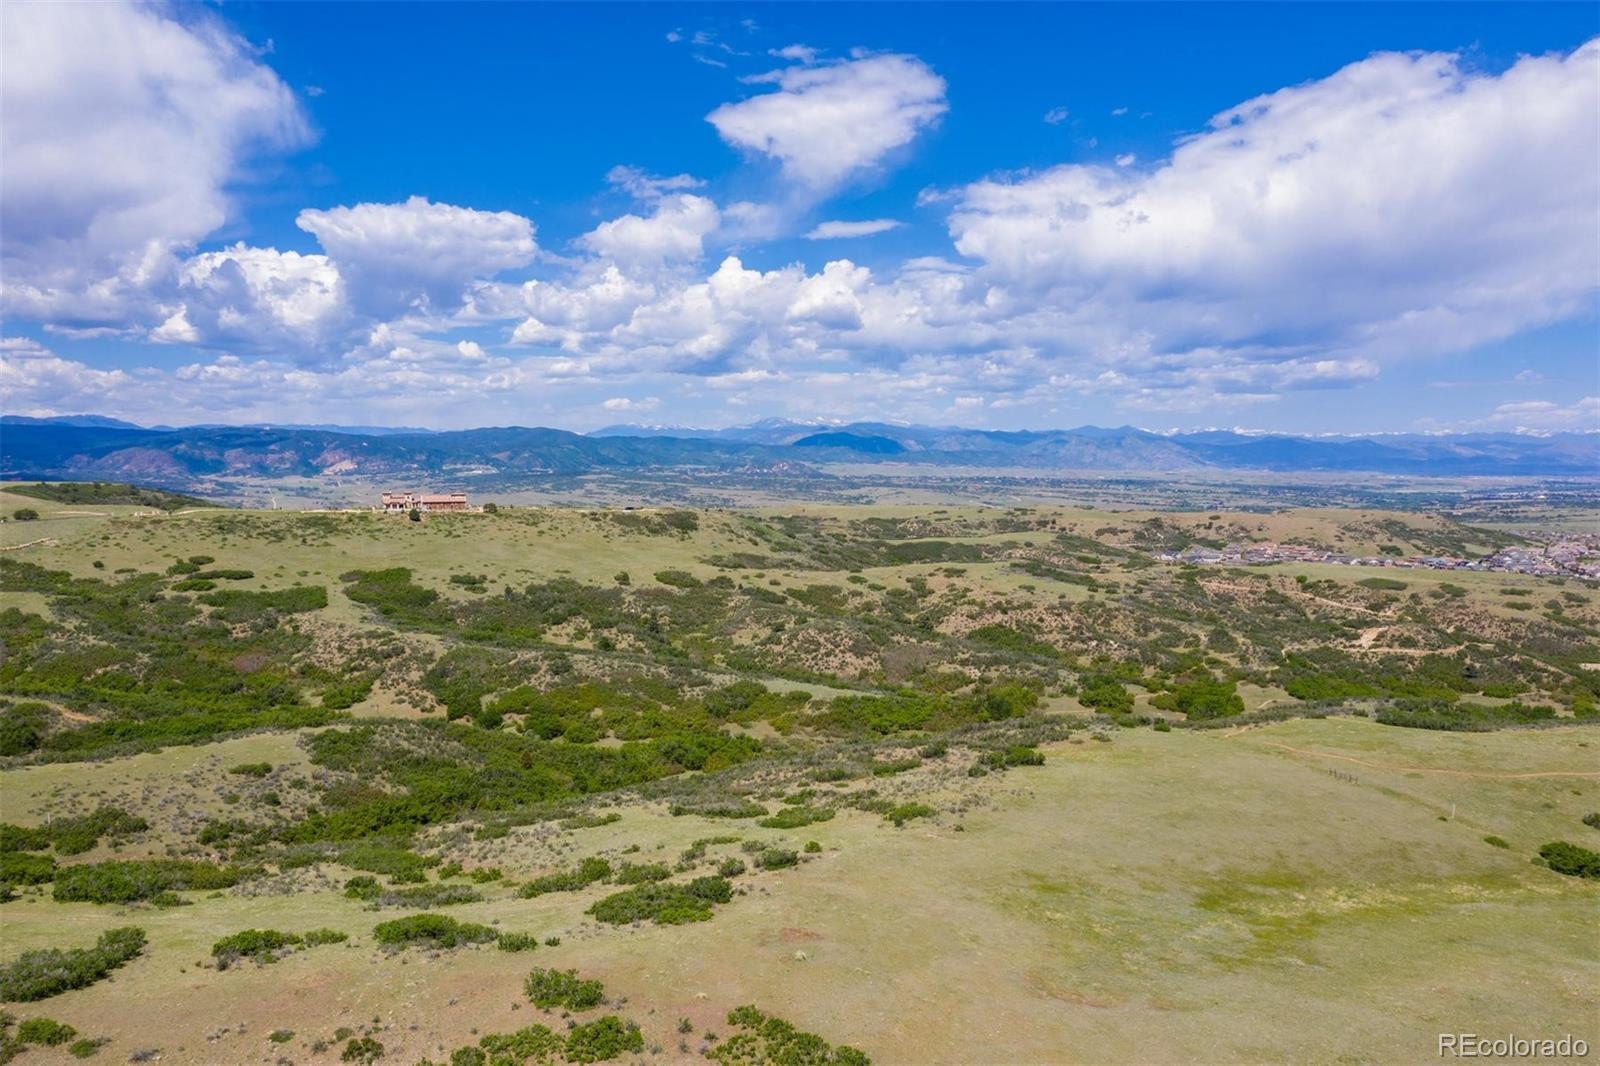 The last, best, and only - beyond phenomenal home site in one of Douglas County's most pristine gated communities. 36 sprawling acres are exquisitely set atop a mesa where mountain views dominate the horizon from Longs Peak all the way to Pikes Peak. An ideal setting on which to build your ultimate Colorado retreat, don't let this exclusive opportunity pass you by! The natural landscape is the quintessential playground by day, and the sparkling stars over the Front Range is the perfect backdrop for unwinding at night. This rare lot is located in Tessa Mesa, a gated community of only sixteen estate sites averaging 35 acres. Access to I-25 is quick for easy commuting to Denver or Colorado Springs, and the community is only two miles northwest of the historic town of Castle Rock. The immediate area is home to 320-acre Phillip Miller Regional Park, the Promenade shopping district, and miles of bike and walking trails. For more outdoor entertainment opportunities, there are numerous golf courses in the area and the community offers equestrian easements for riding between properties. Witness this impeccable landscape for yourself and envision your dream estate coming to life! Check out the property video under the Virtual Tour tab.